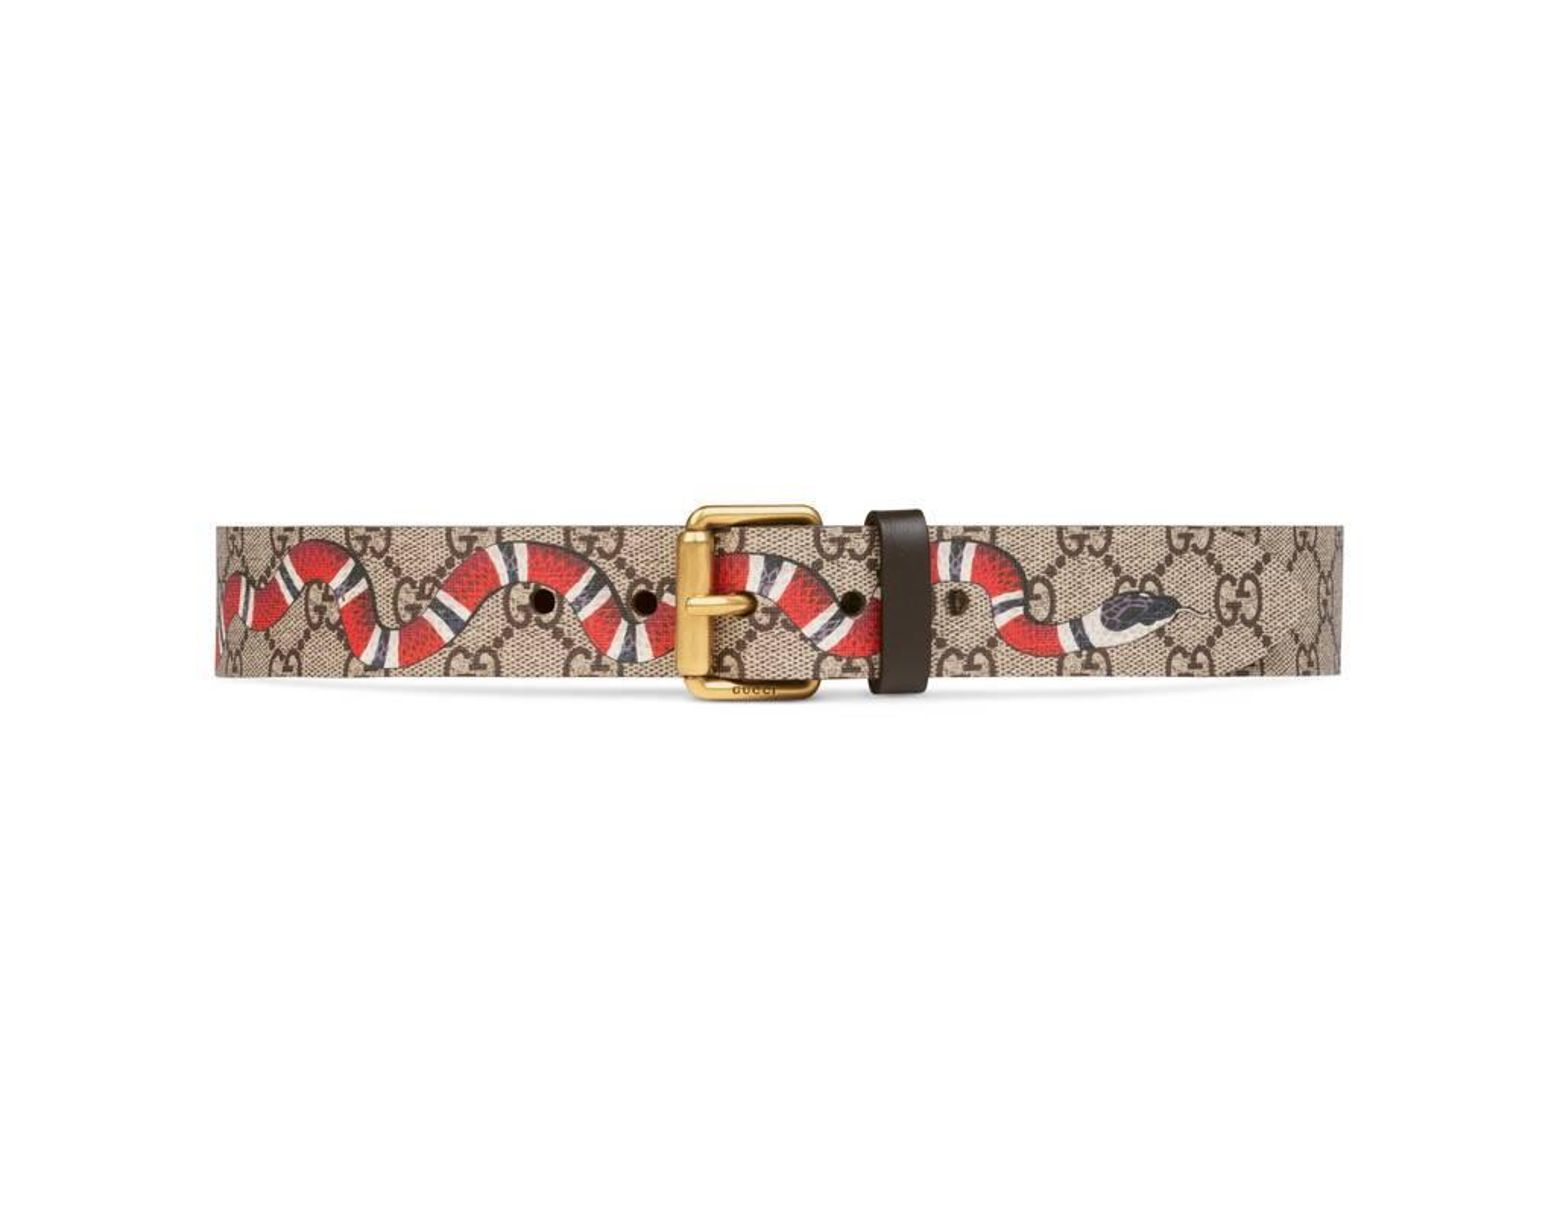 433b11256 Gucci Snake Print Gg Supreme Belt for Men - Save 36% - Lyst